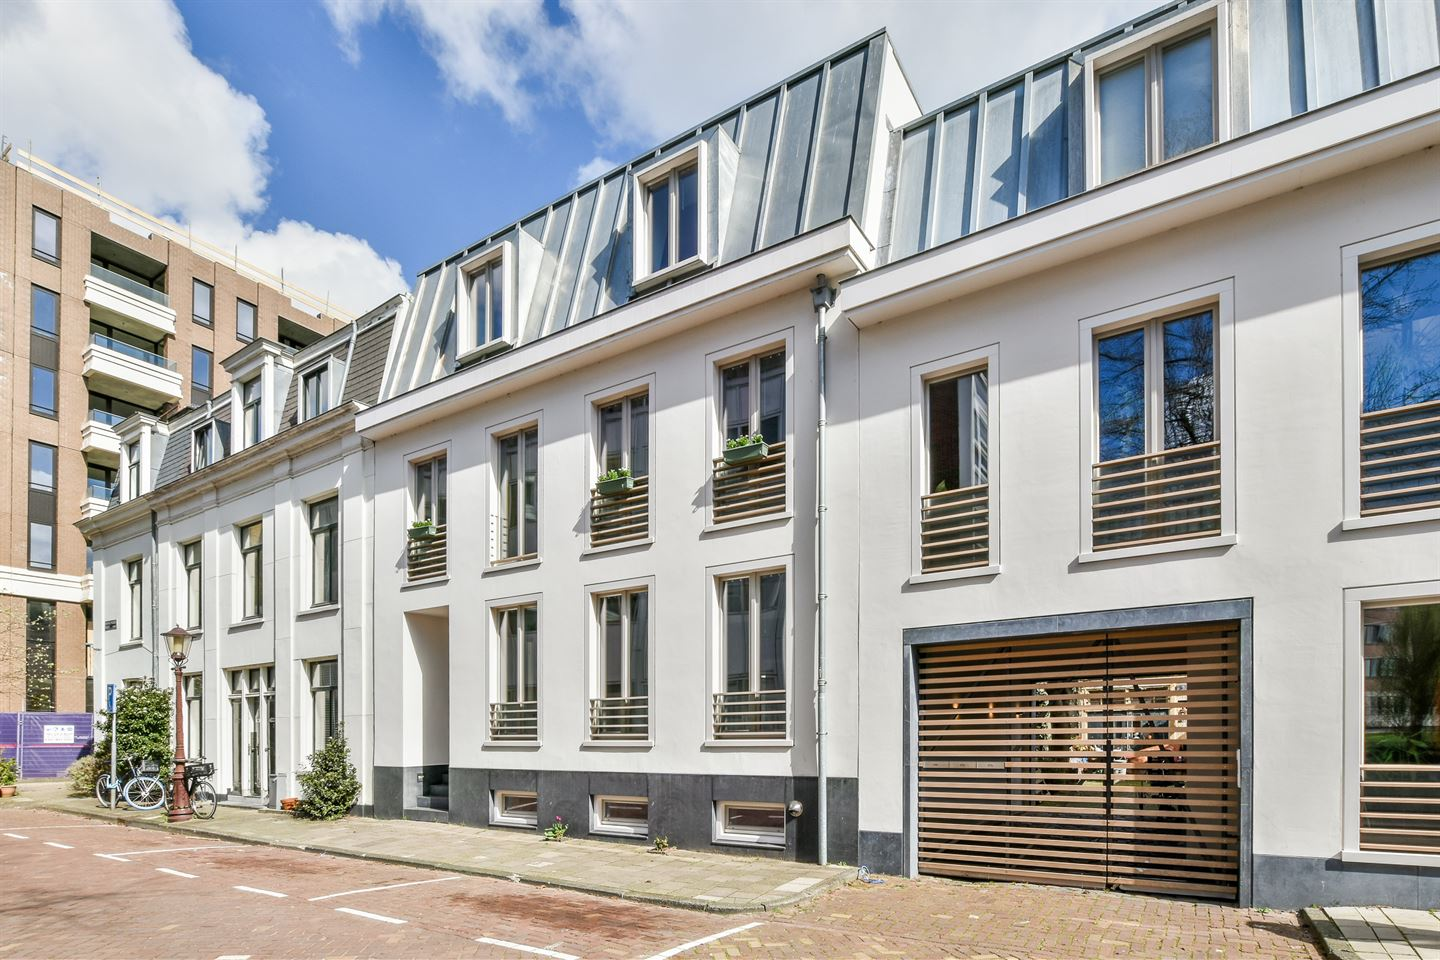 View photo 3 of Plantage Muidergracht 105 A